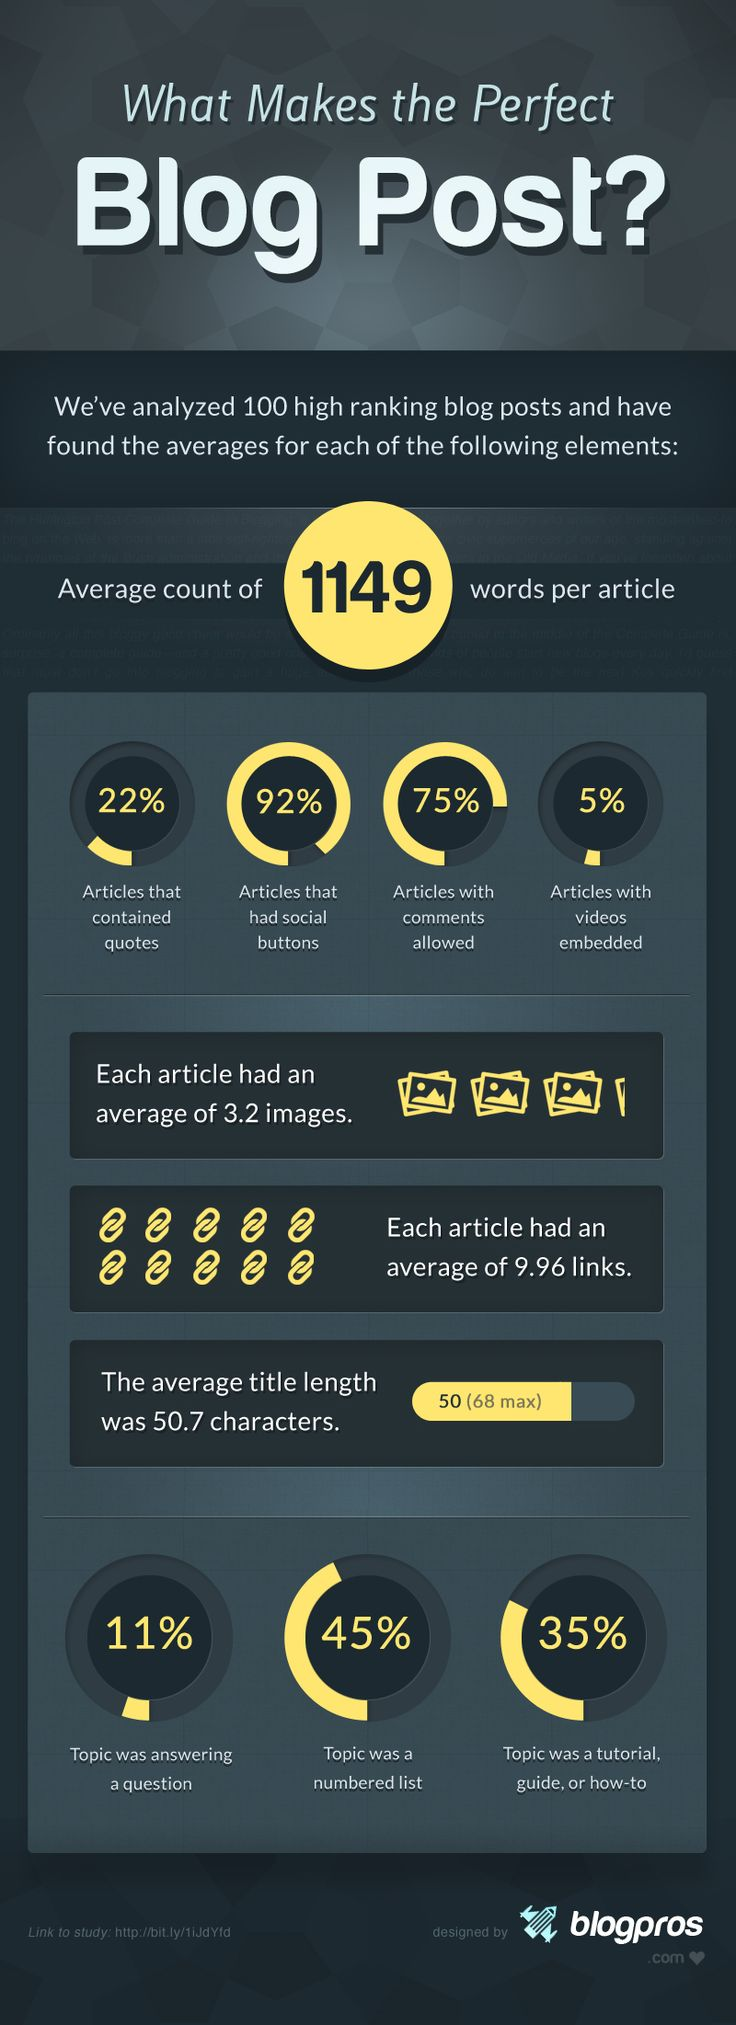 this infographic breaks down the perfect blog post